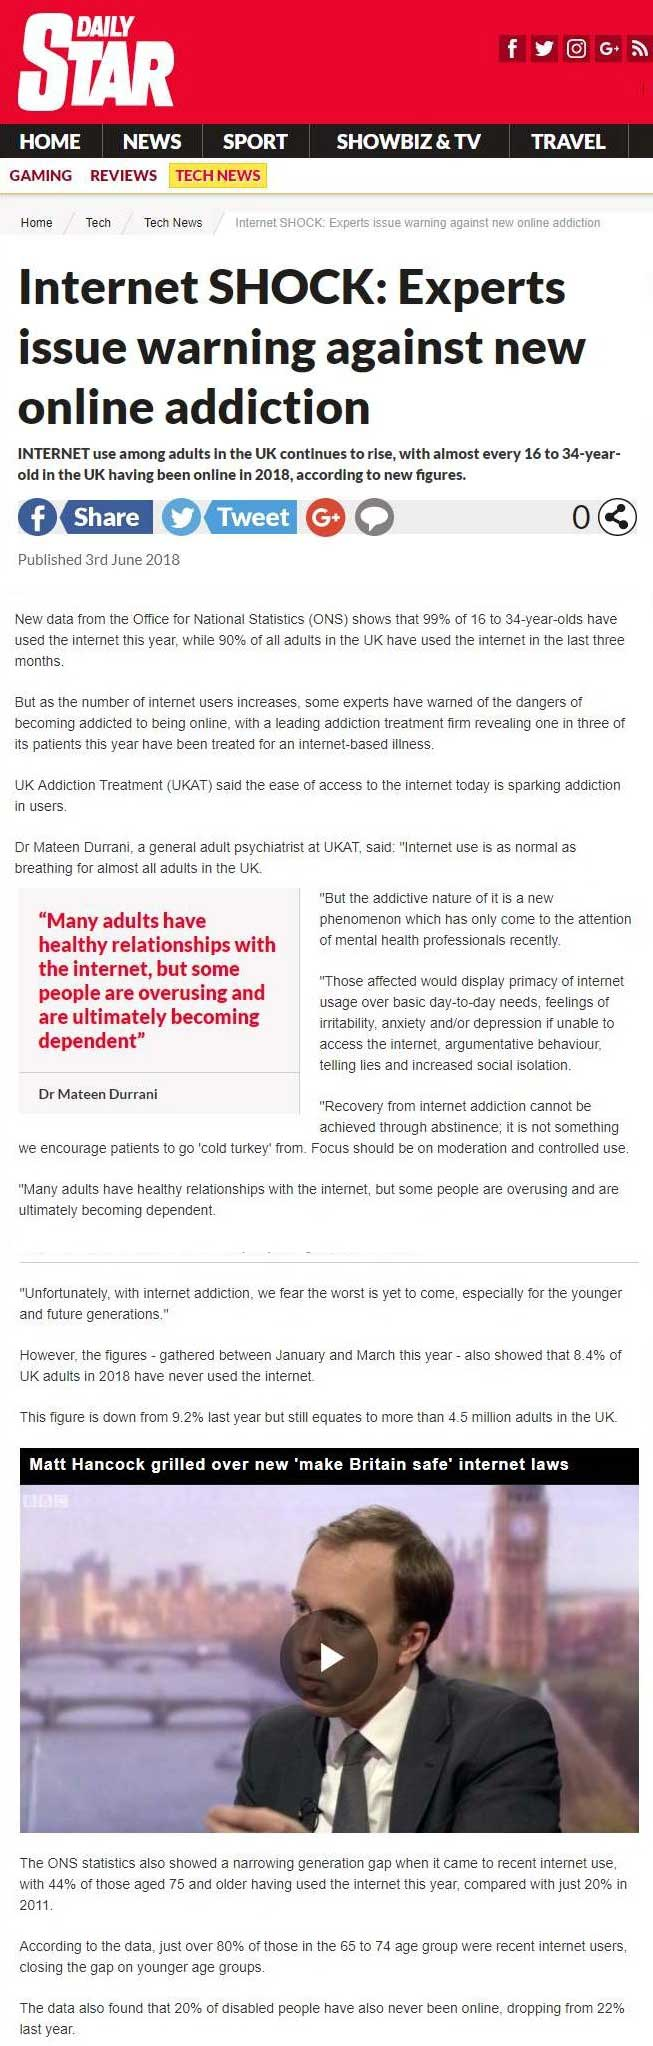 Daily Star - UKAT Experts Warn against Internet Addiction